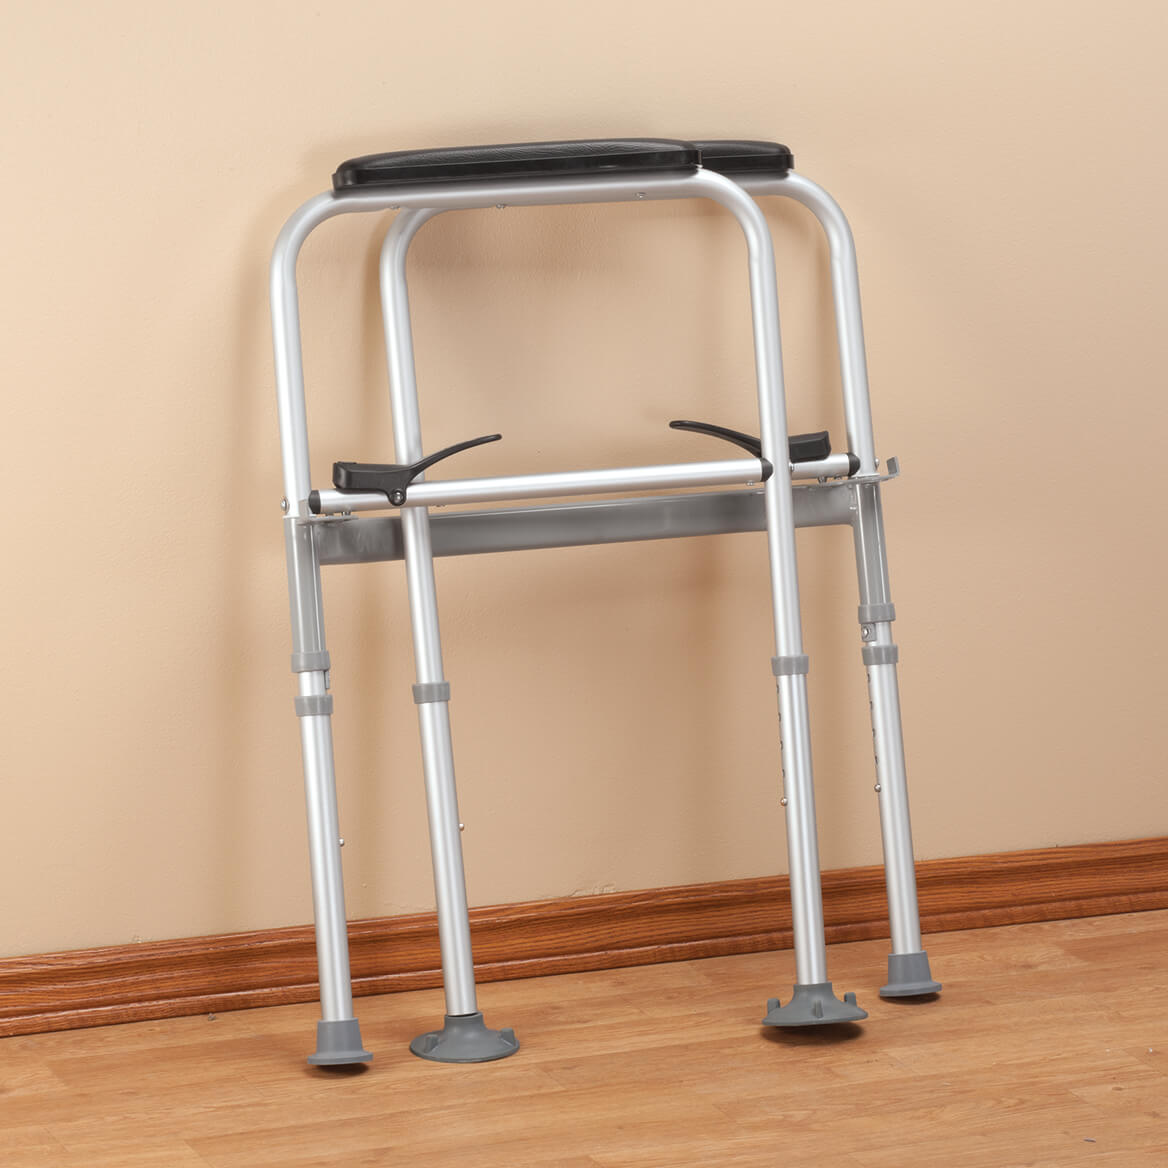 Foldable Toilet Support                XL-359871